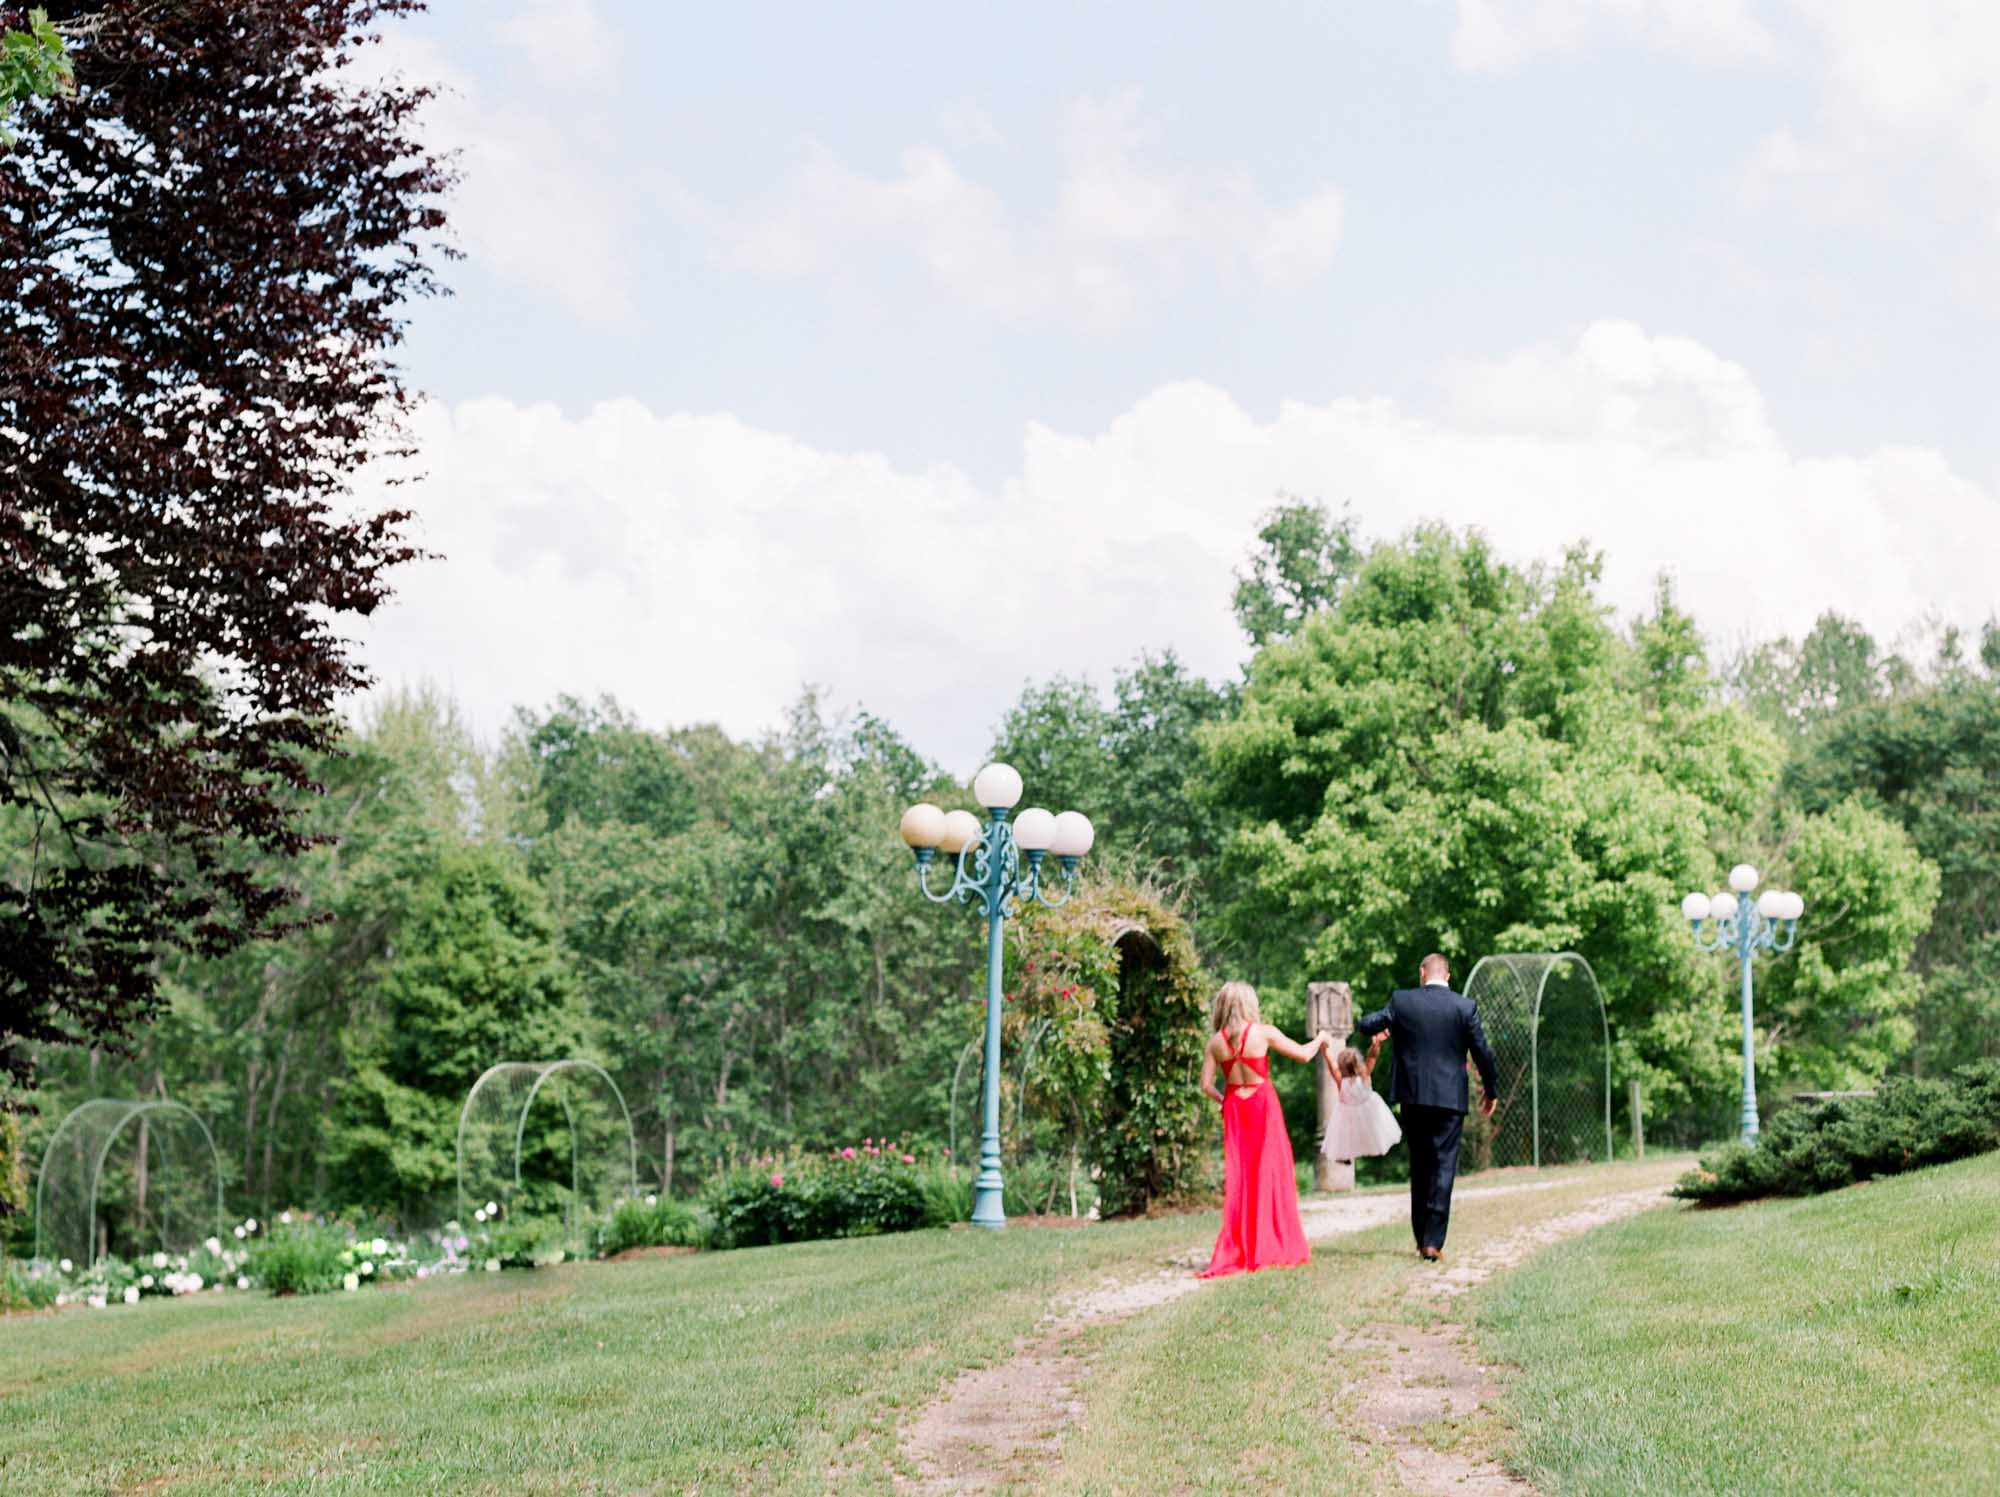 charlotte_lynchburg_film_family_wedding_photographer-37.jpg